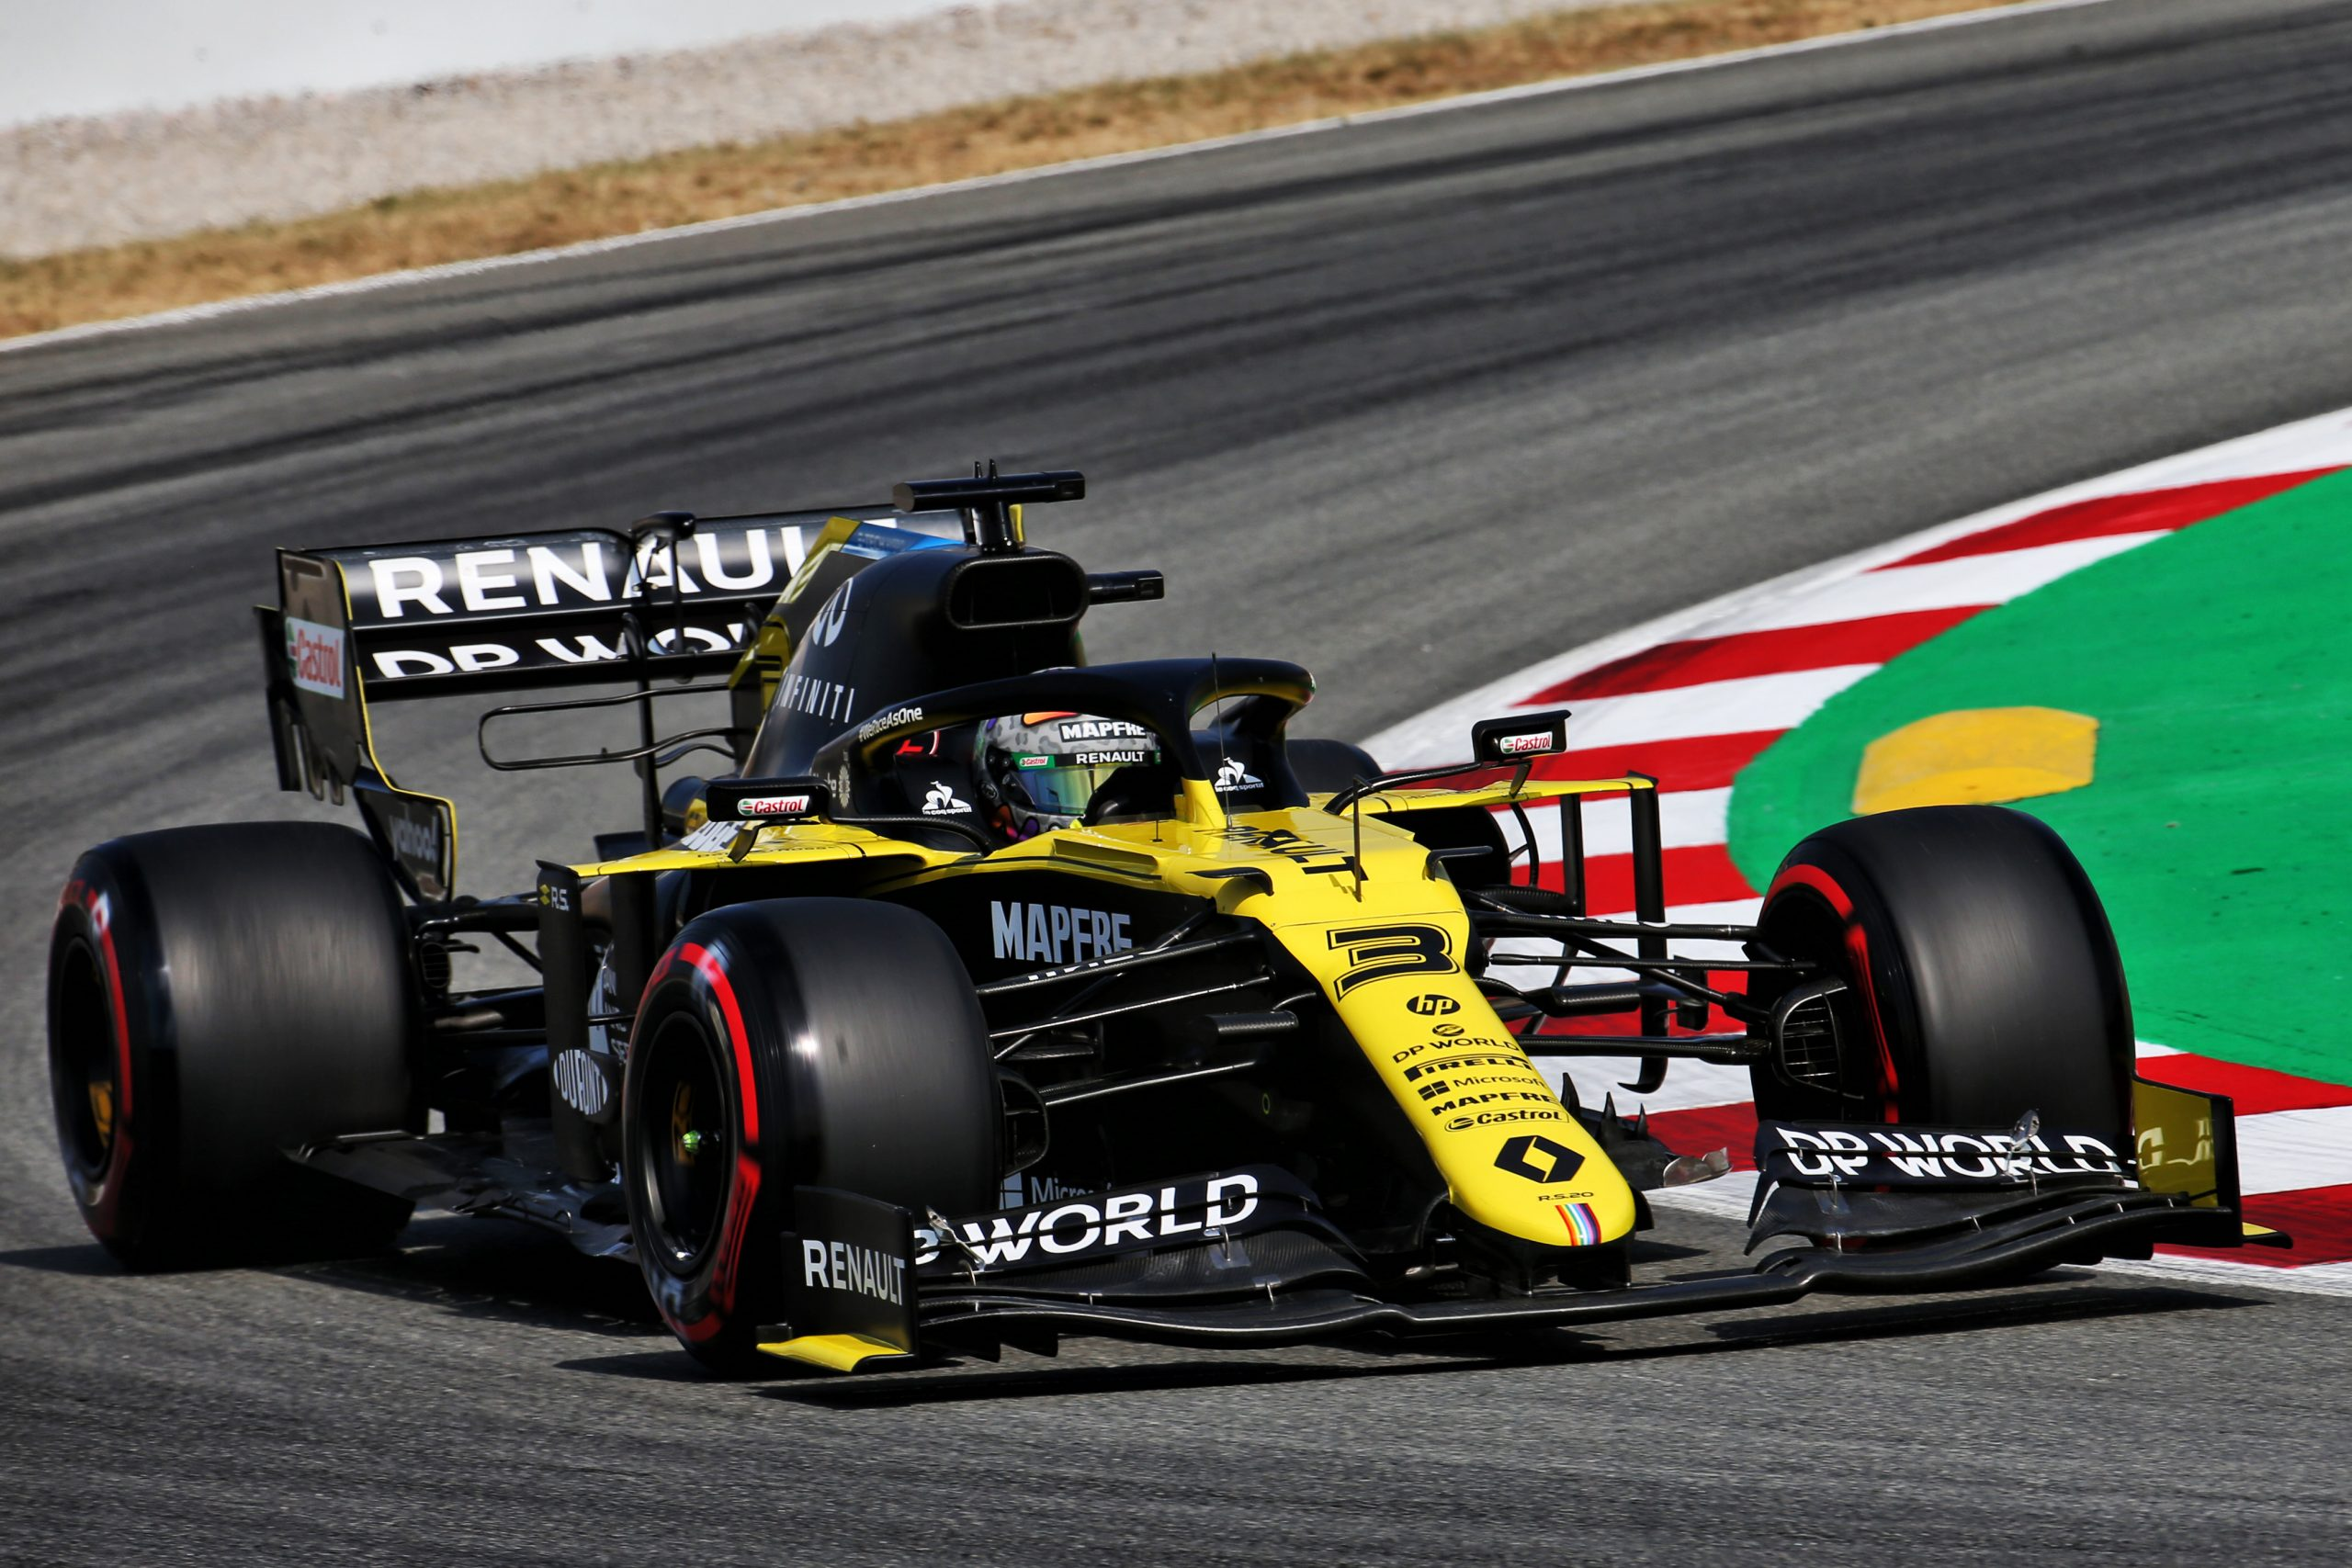 Motor Racing - Formula One World Championship - Spanish Grand Prix - Practice Day - Barcelona, Spain